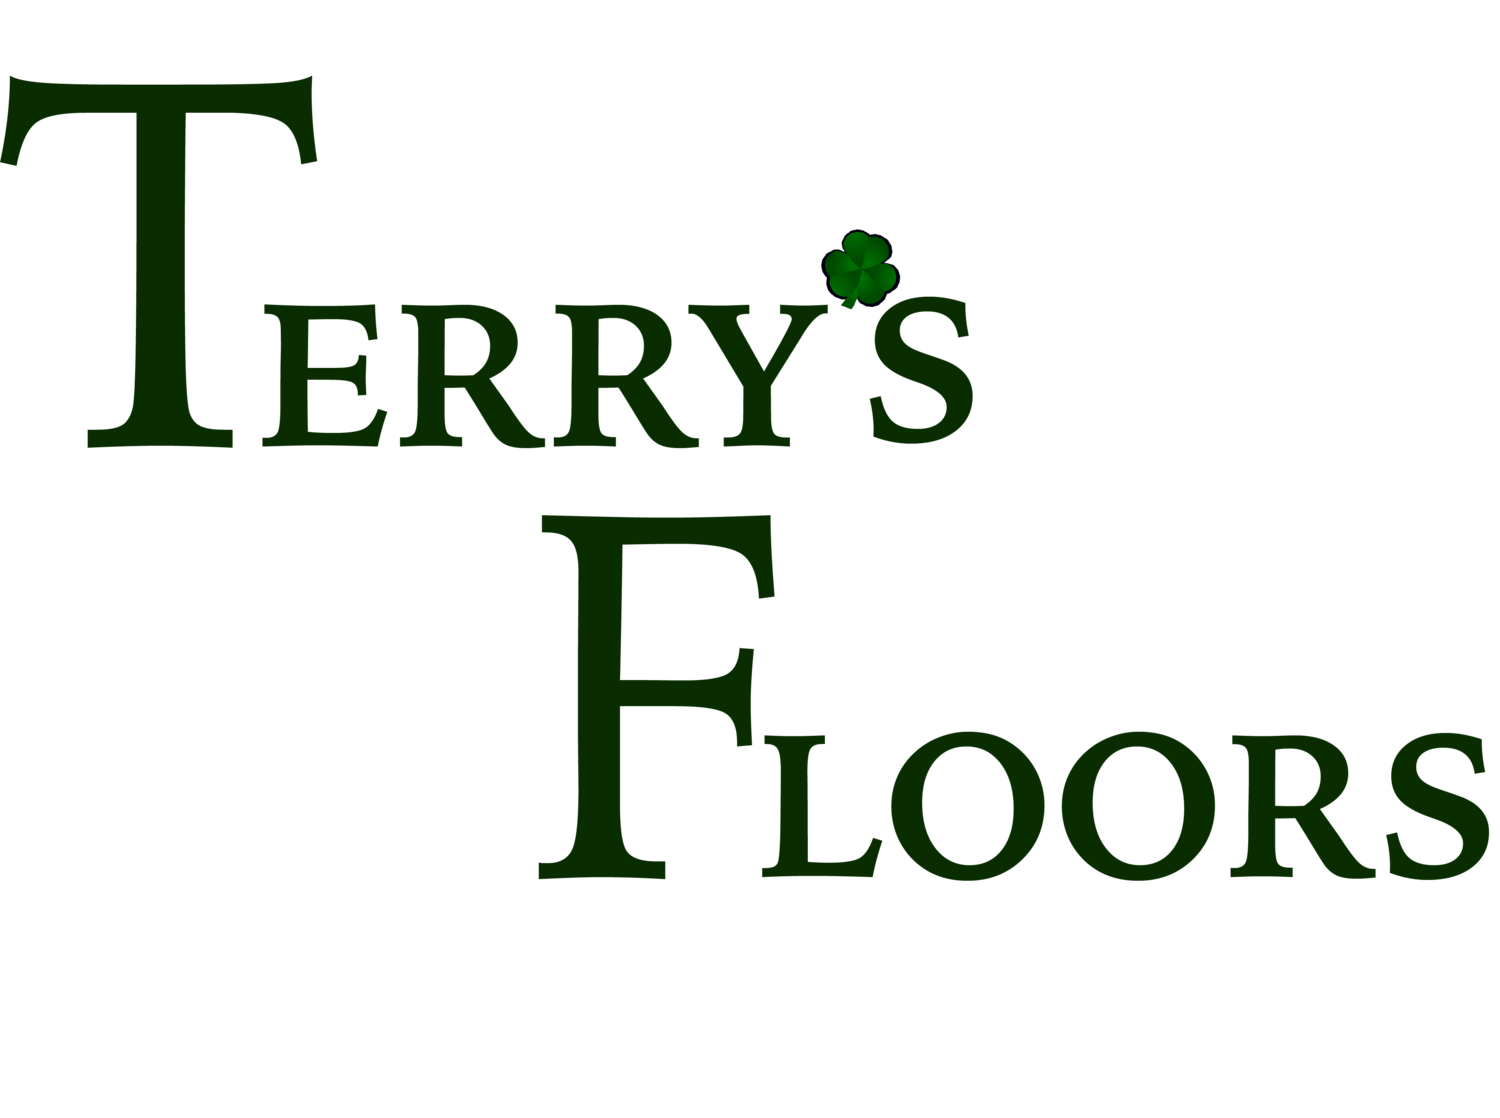 Terry's Floors